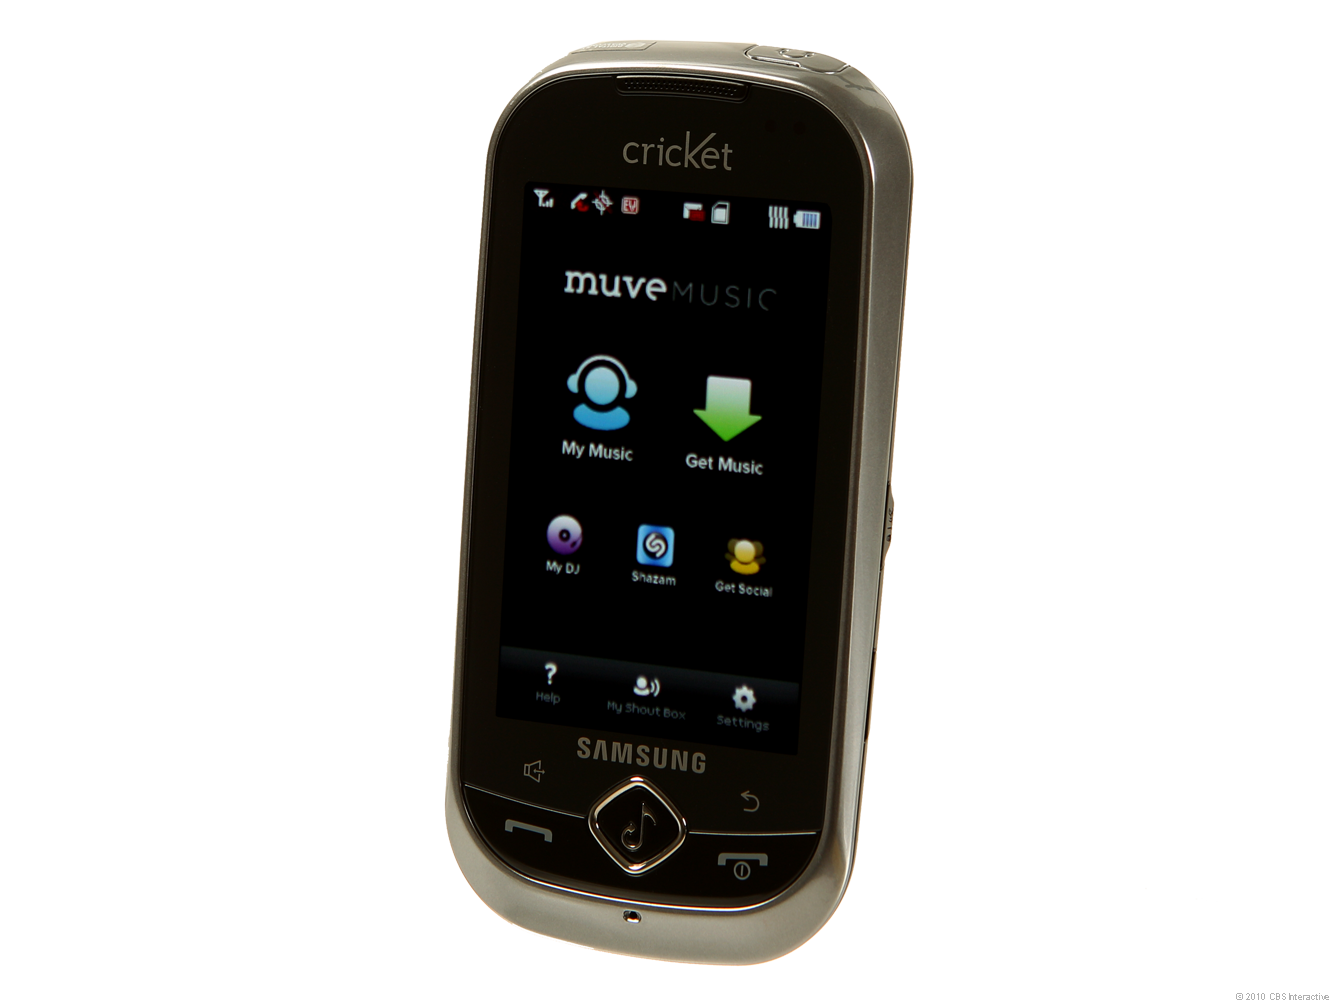 Samsung Suede with Muve Music